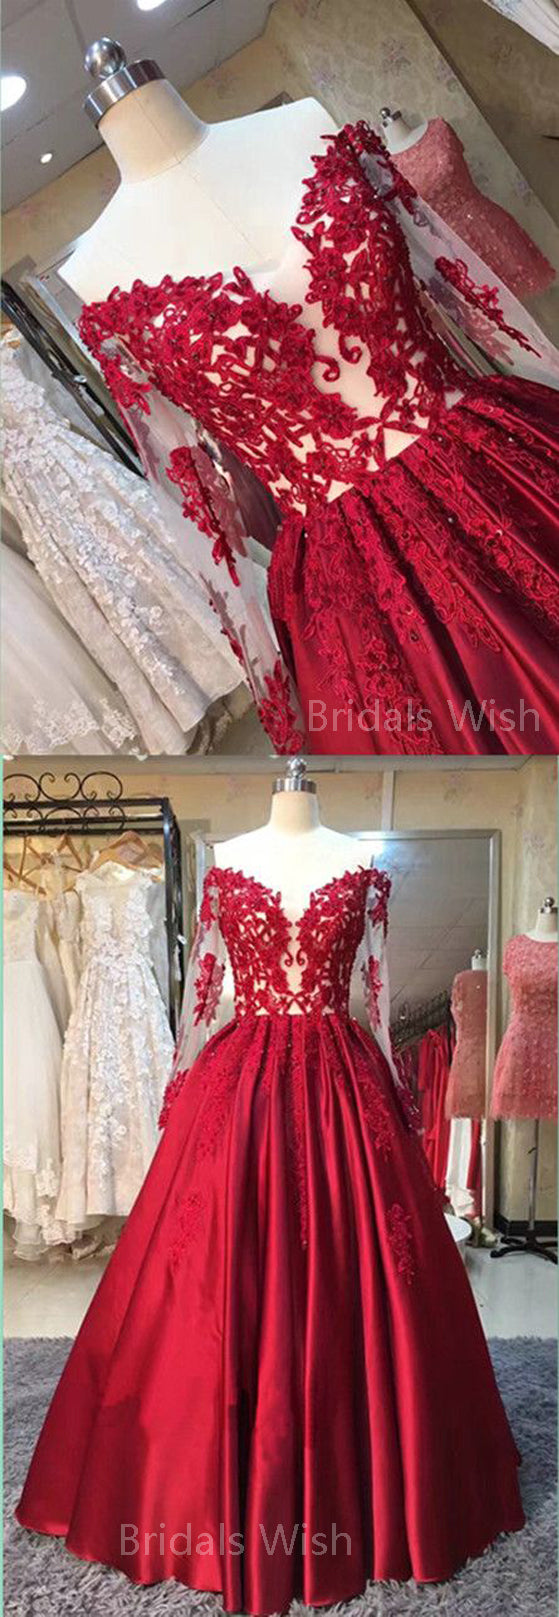 Gorgeous Red Lace Applique Off the Shoulder Long Sleeves Long Evening Prom Dresses, BW0315